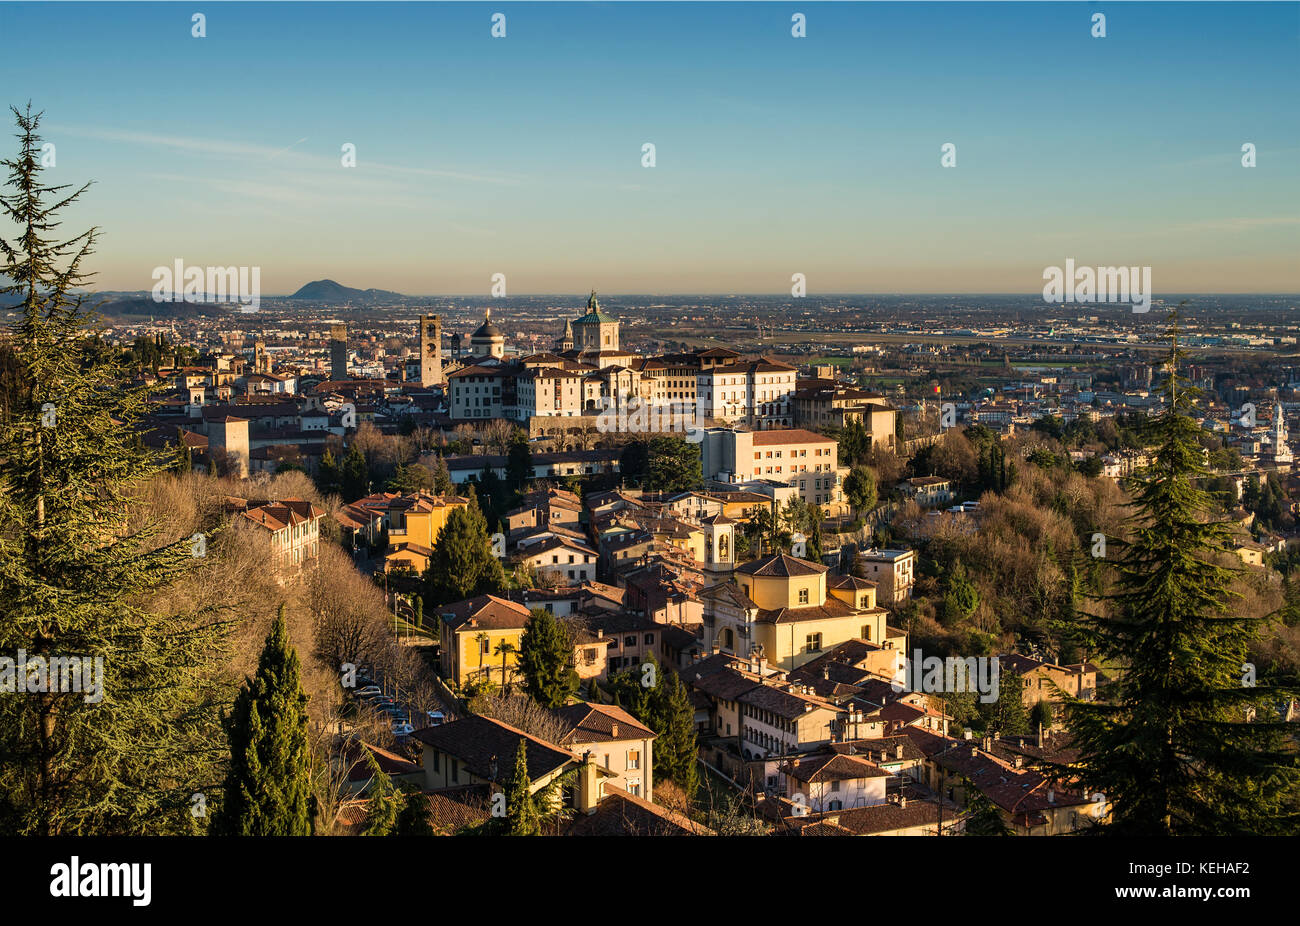 View over Citta Alta or Old Town buildings in the ancient city of Bergamo, Lombardia, Italy on a clear day, taken Stock Photo